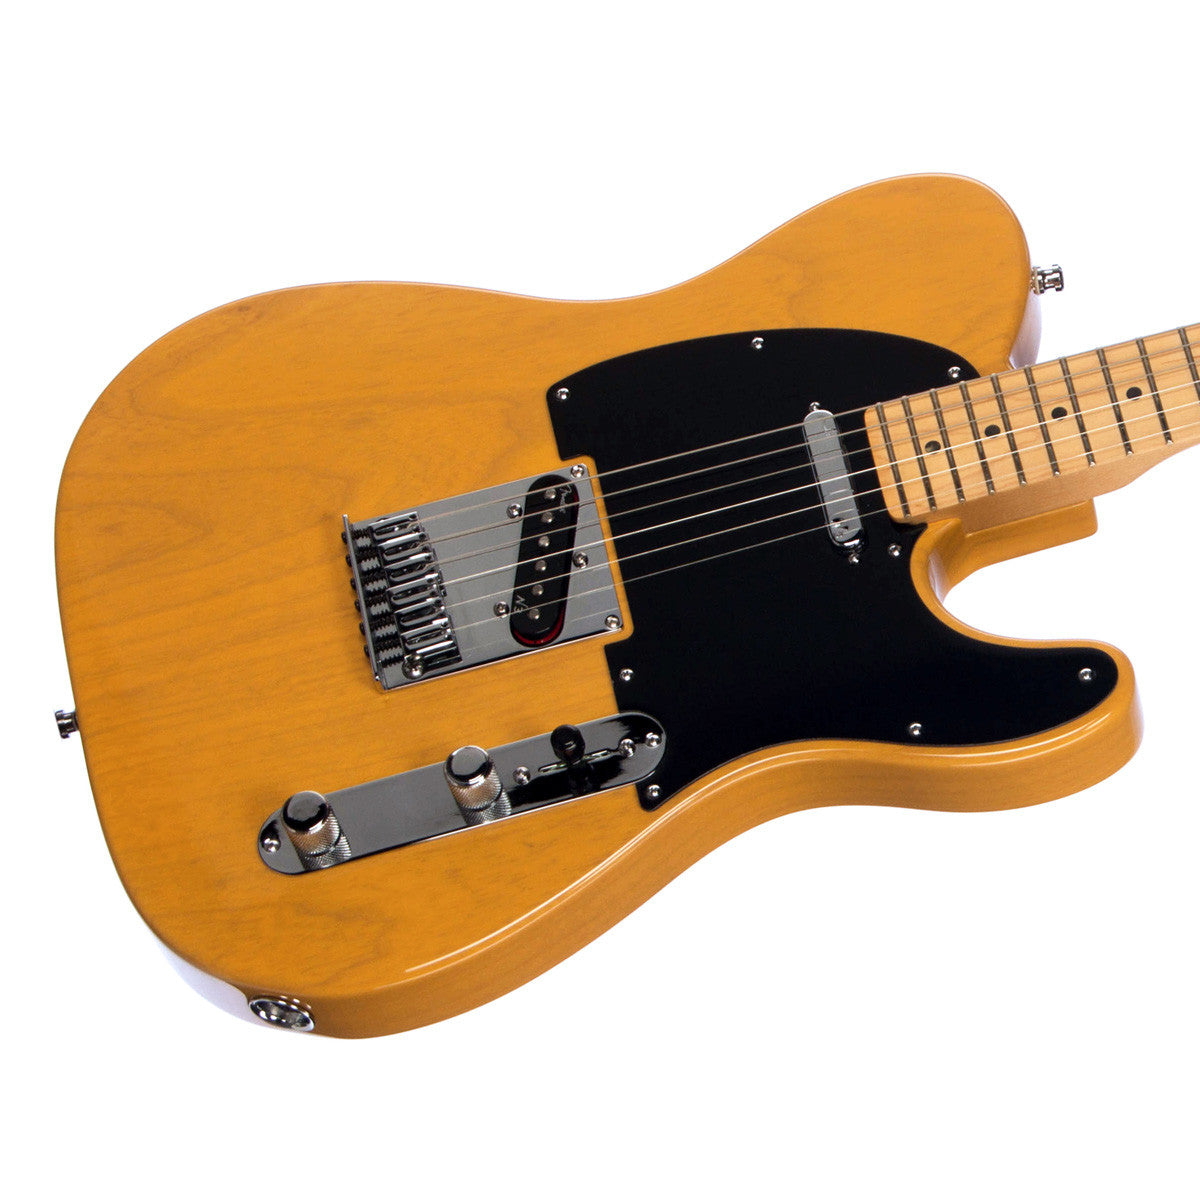 fender_american_deluxe_telecaster_am_dlx_tele_butterscotch_blonde_maple_neck_electric_guitar_0119502750_frontbody american deluxe telecaster wiring diagrams dolgular com fender american deluxe telecaster wiring diagram at readyjetset.co